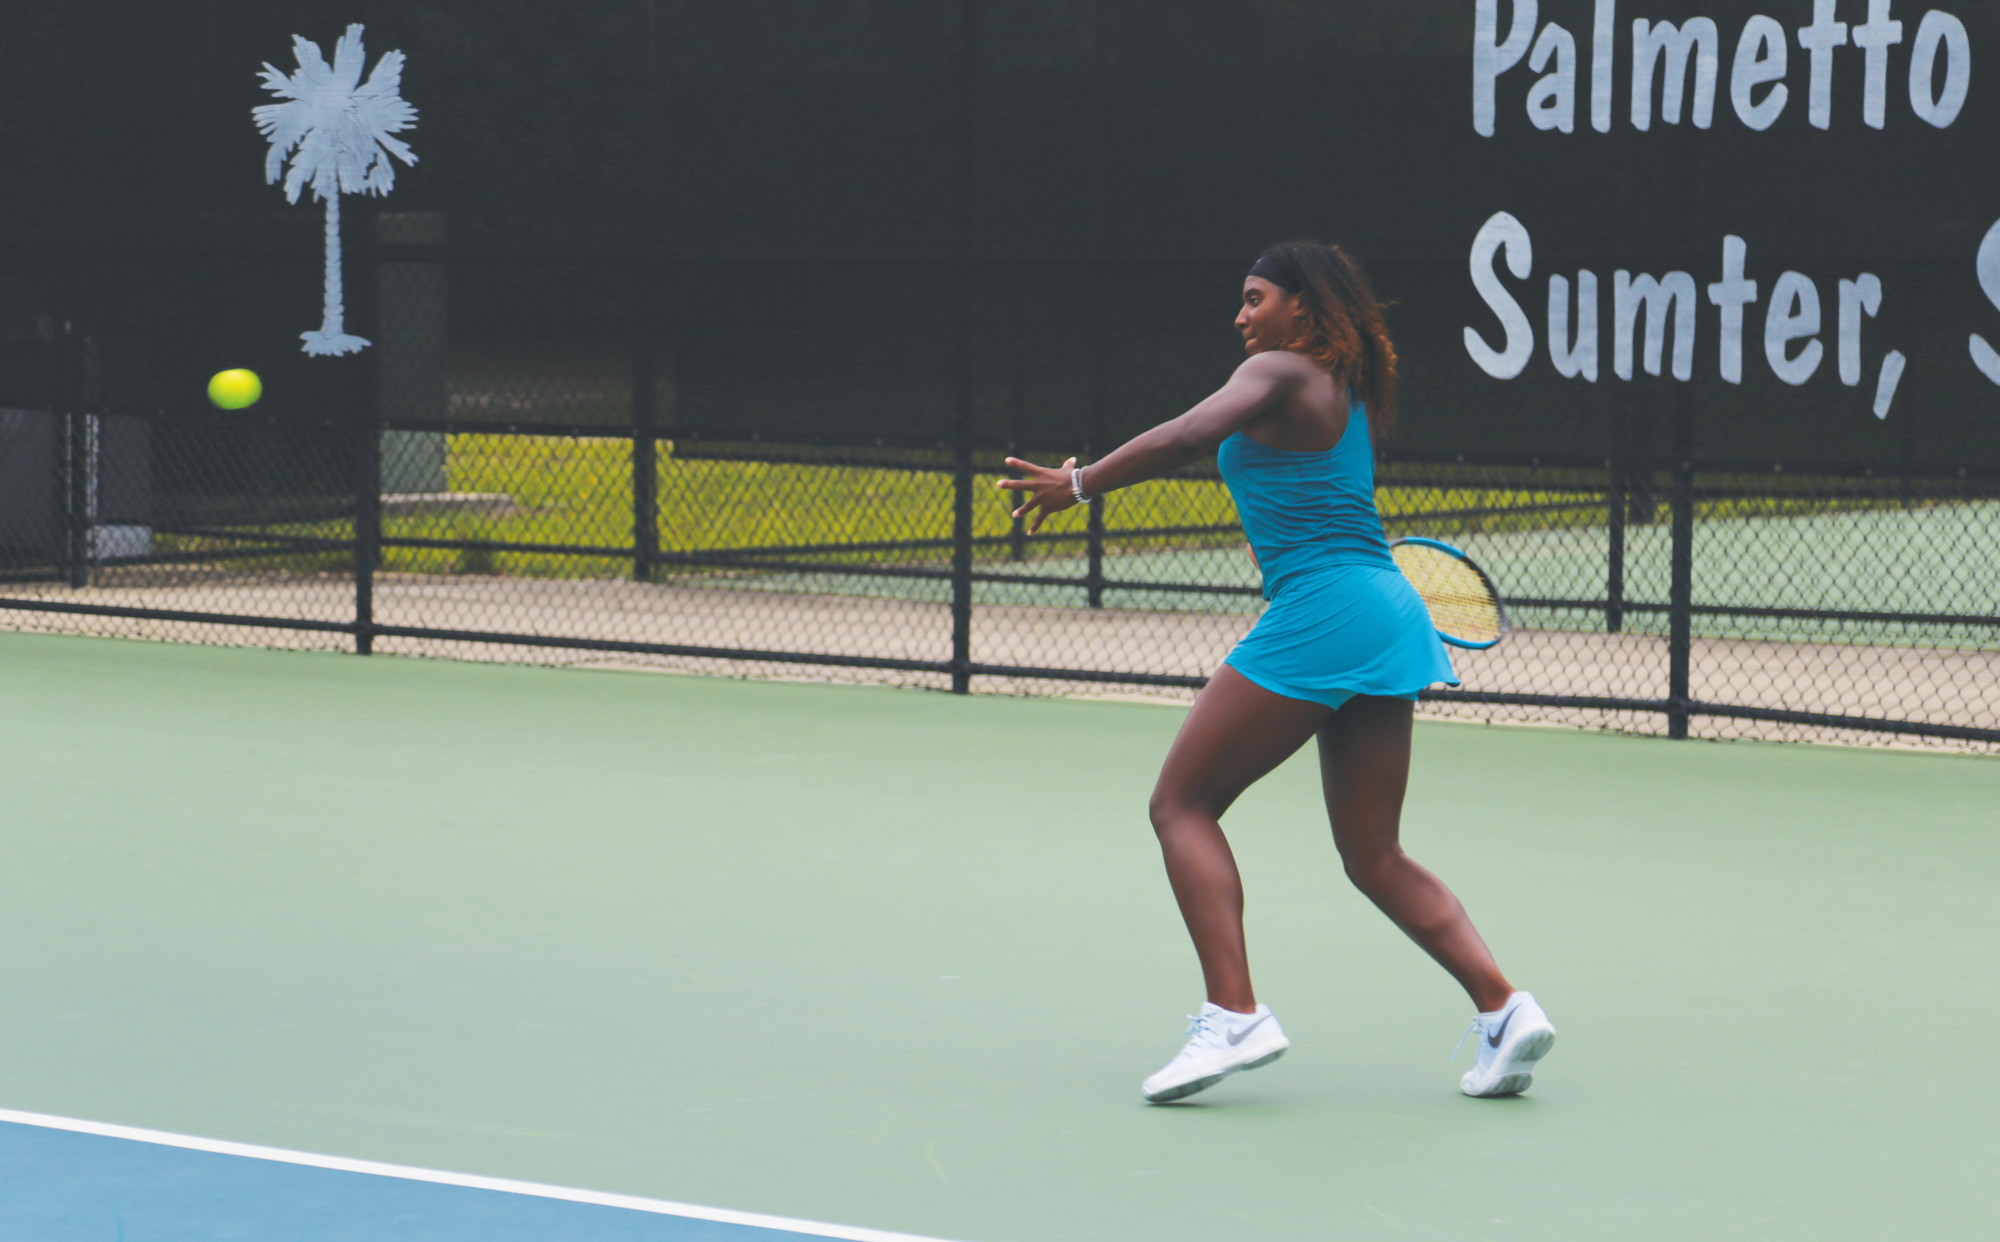 Hailey Baptiste prepares to return a shot during her 6-3, 6-3 victory over Genevieve Lorbergs in their singles qualifying final match on Tuesday in the Palmetto Pro Open at Palmetto Tennis Center. Baptiste advanced to the main draw, which begins today.